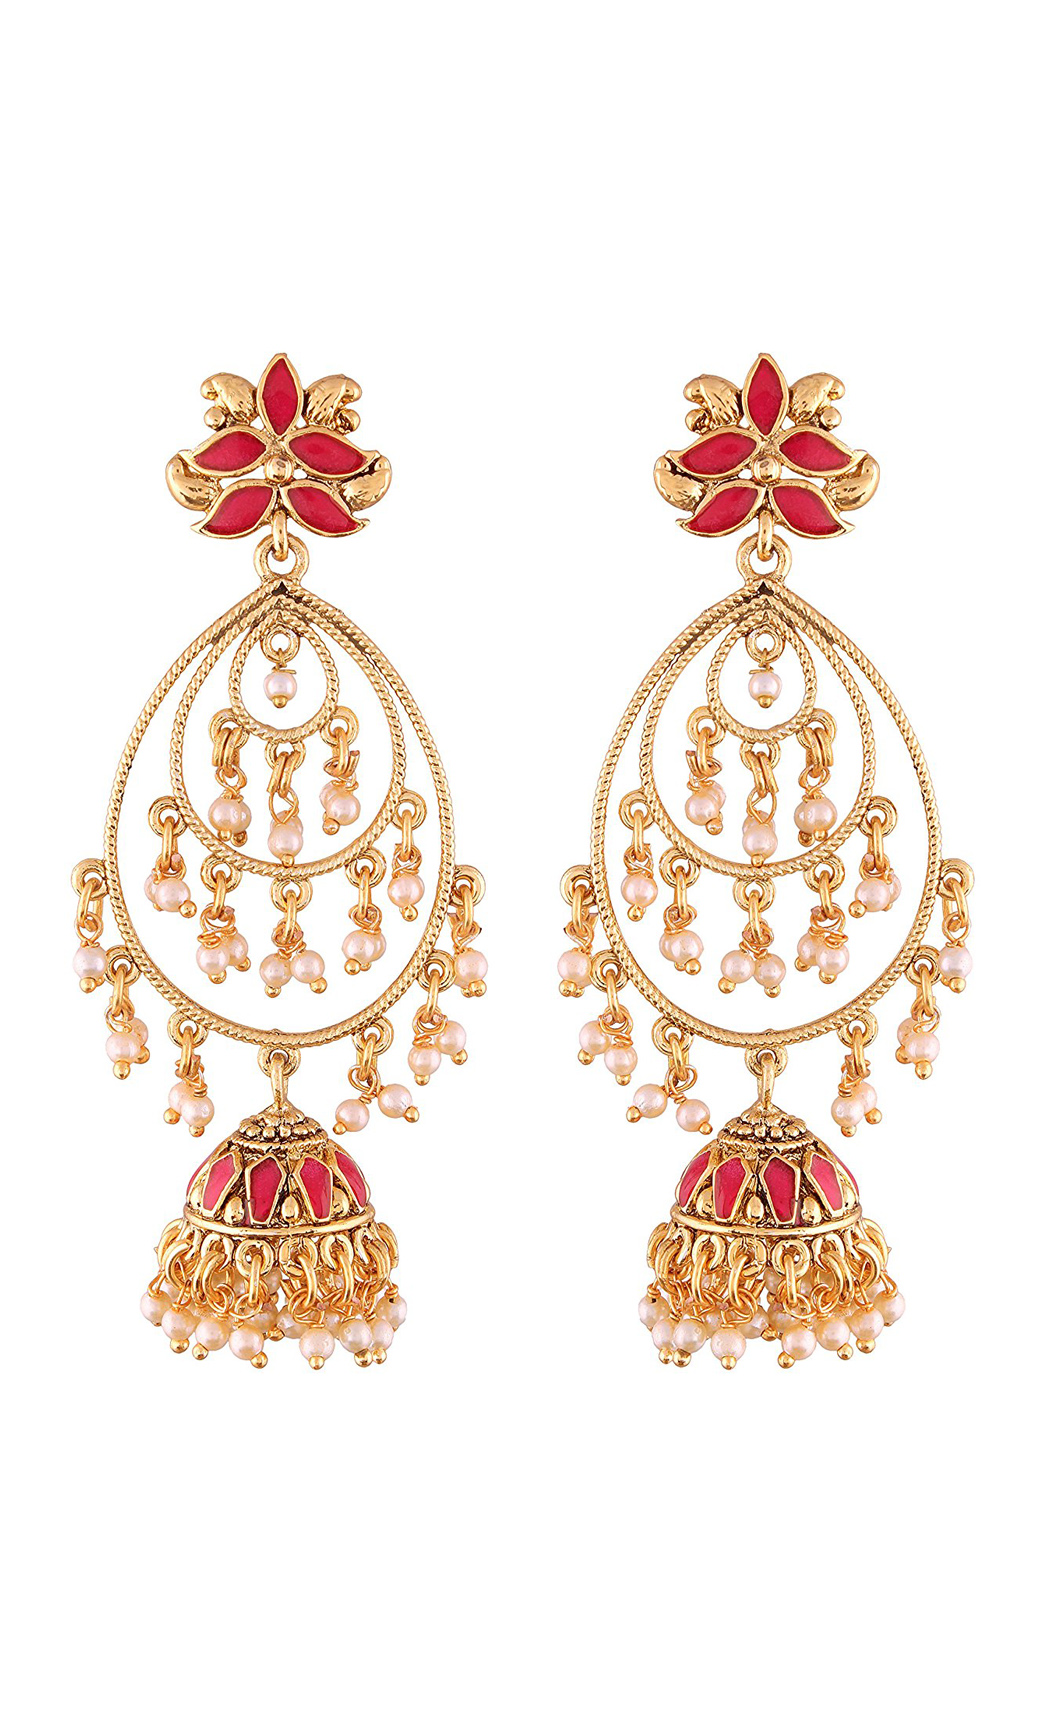 Red Gold and Pearl Long Jhumka Earrings - Shop Online